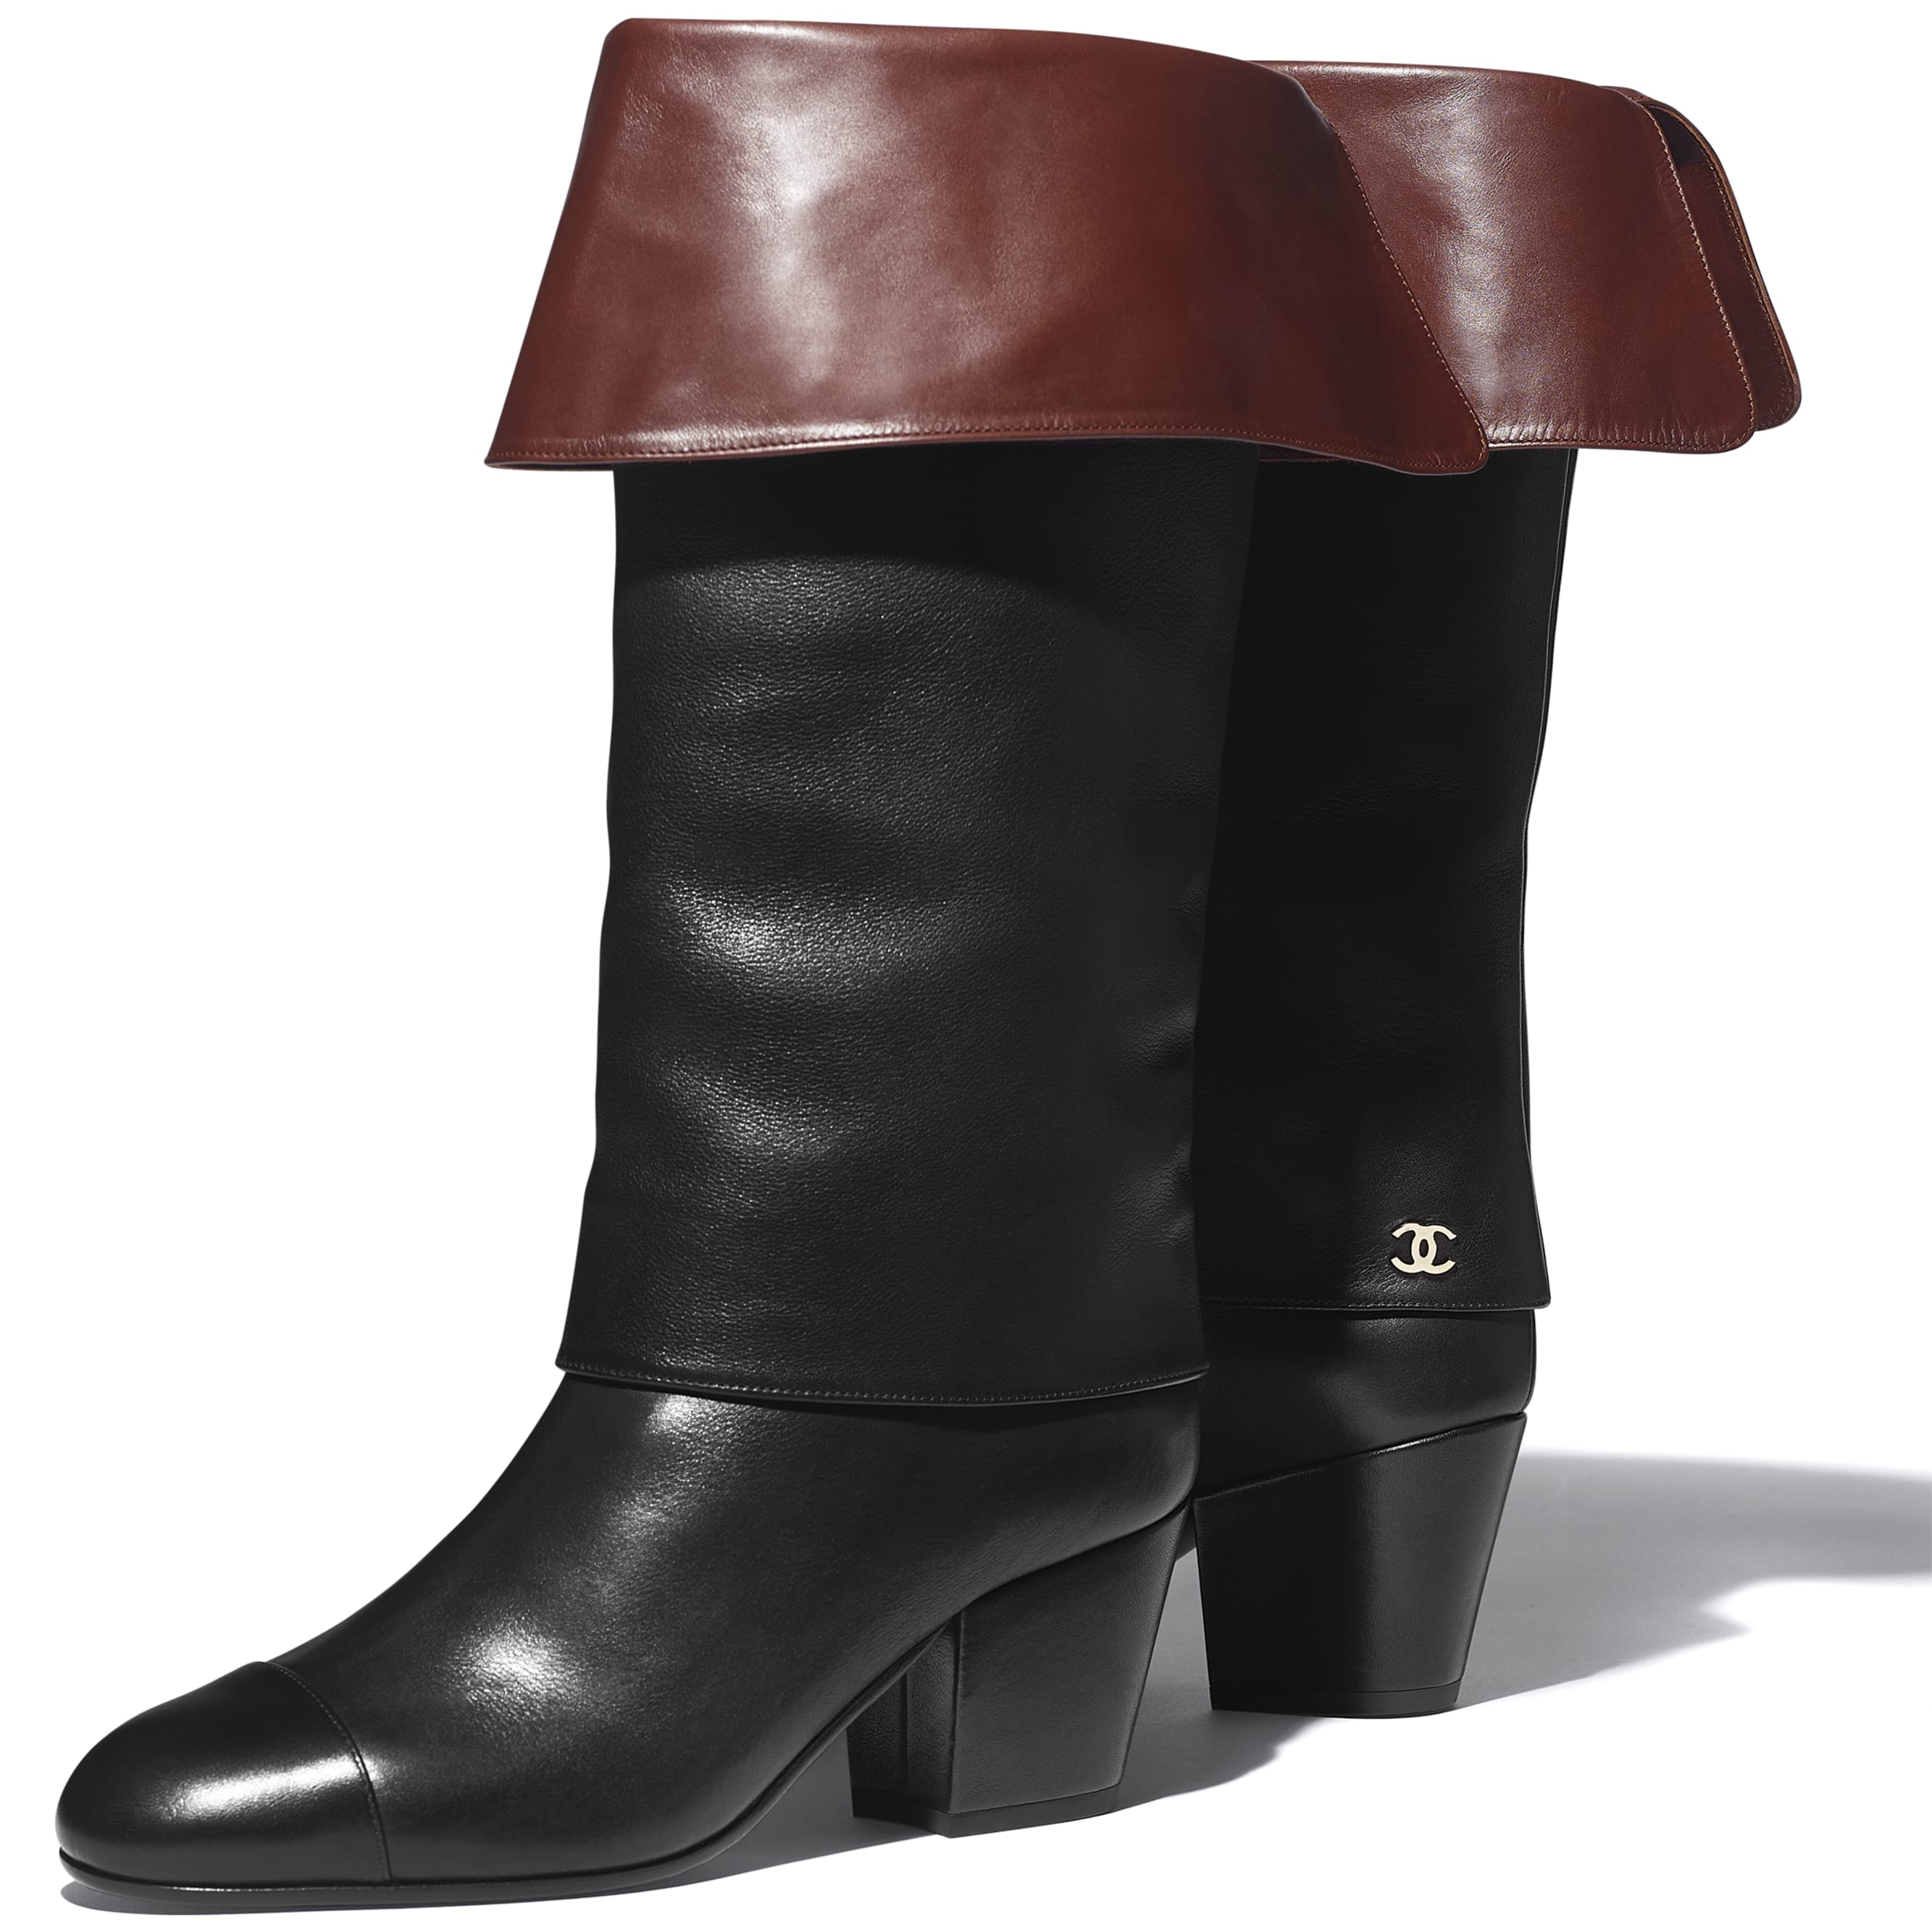 High Boots - Black & Brown - Calfskin - CHANEL - Extra view - see standard sized version